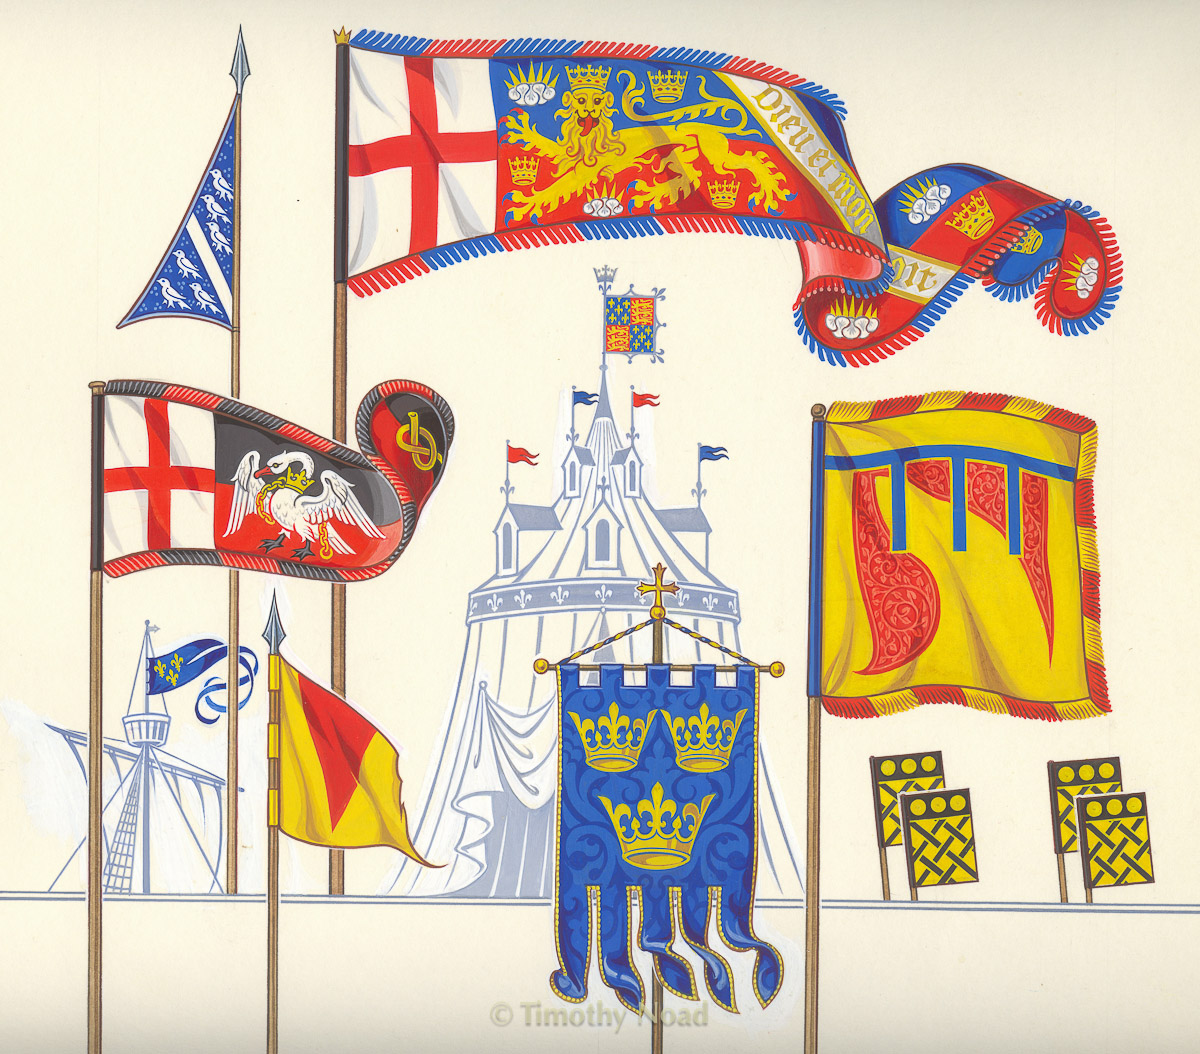 Lovett book heraldic flags heraldry